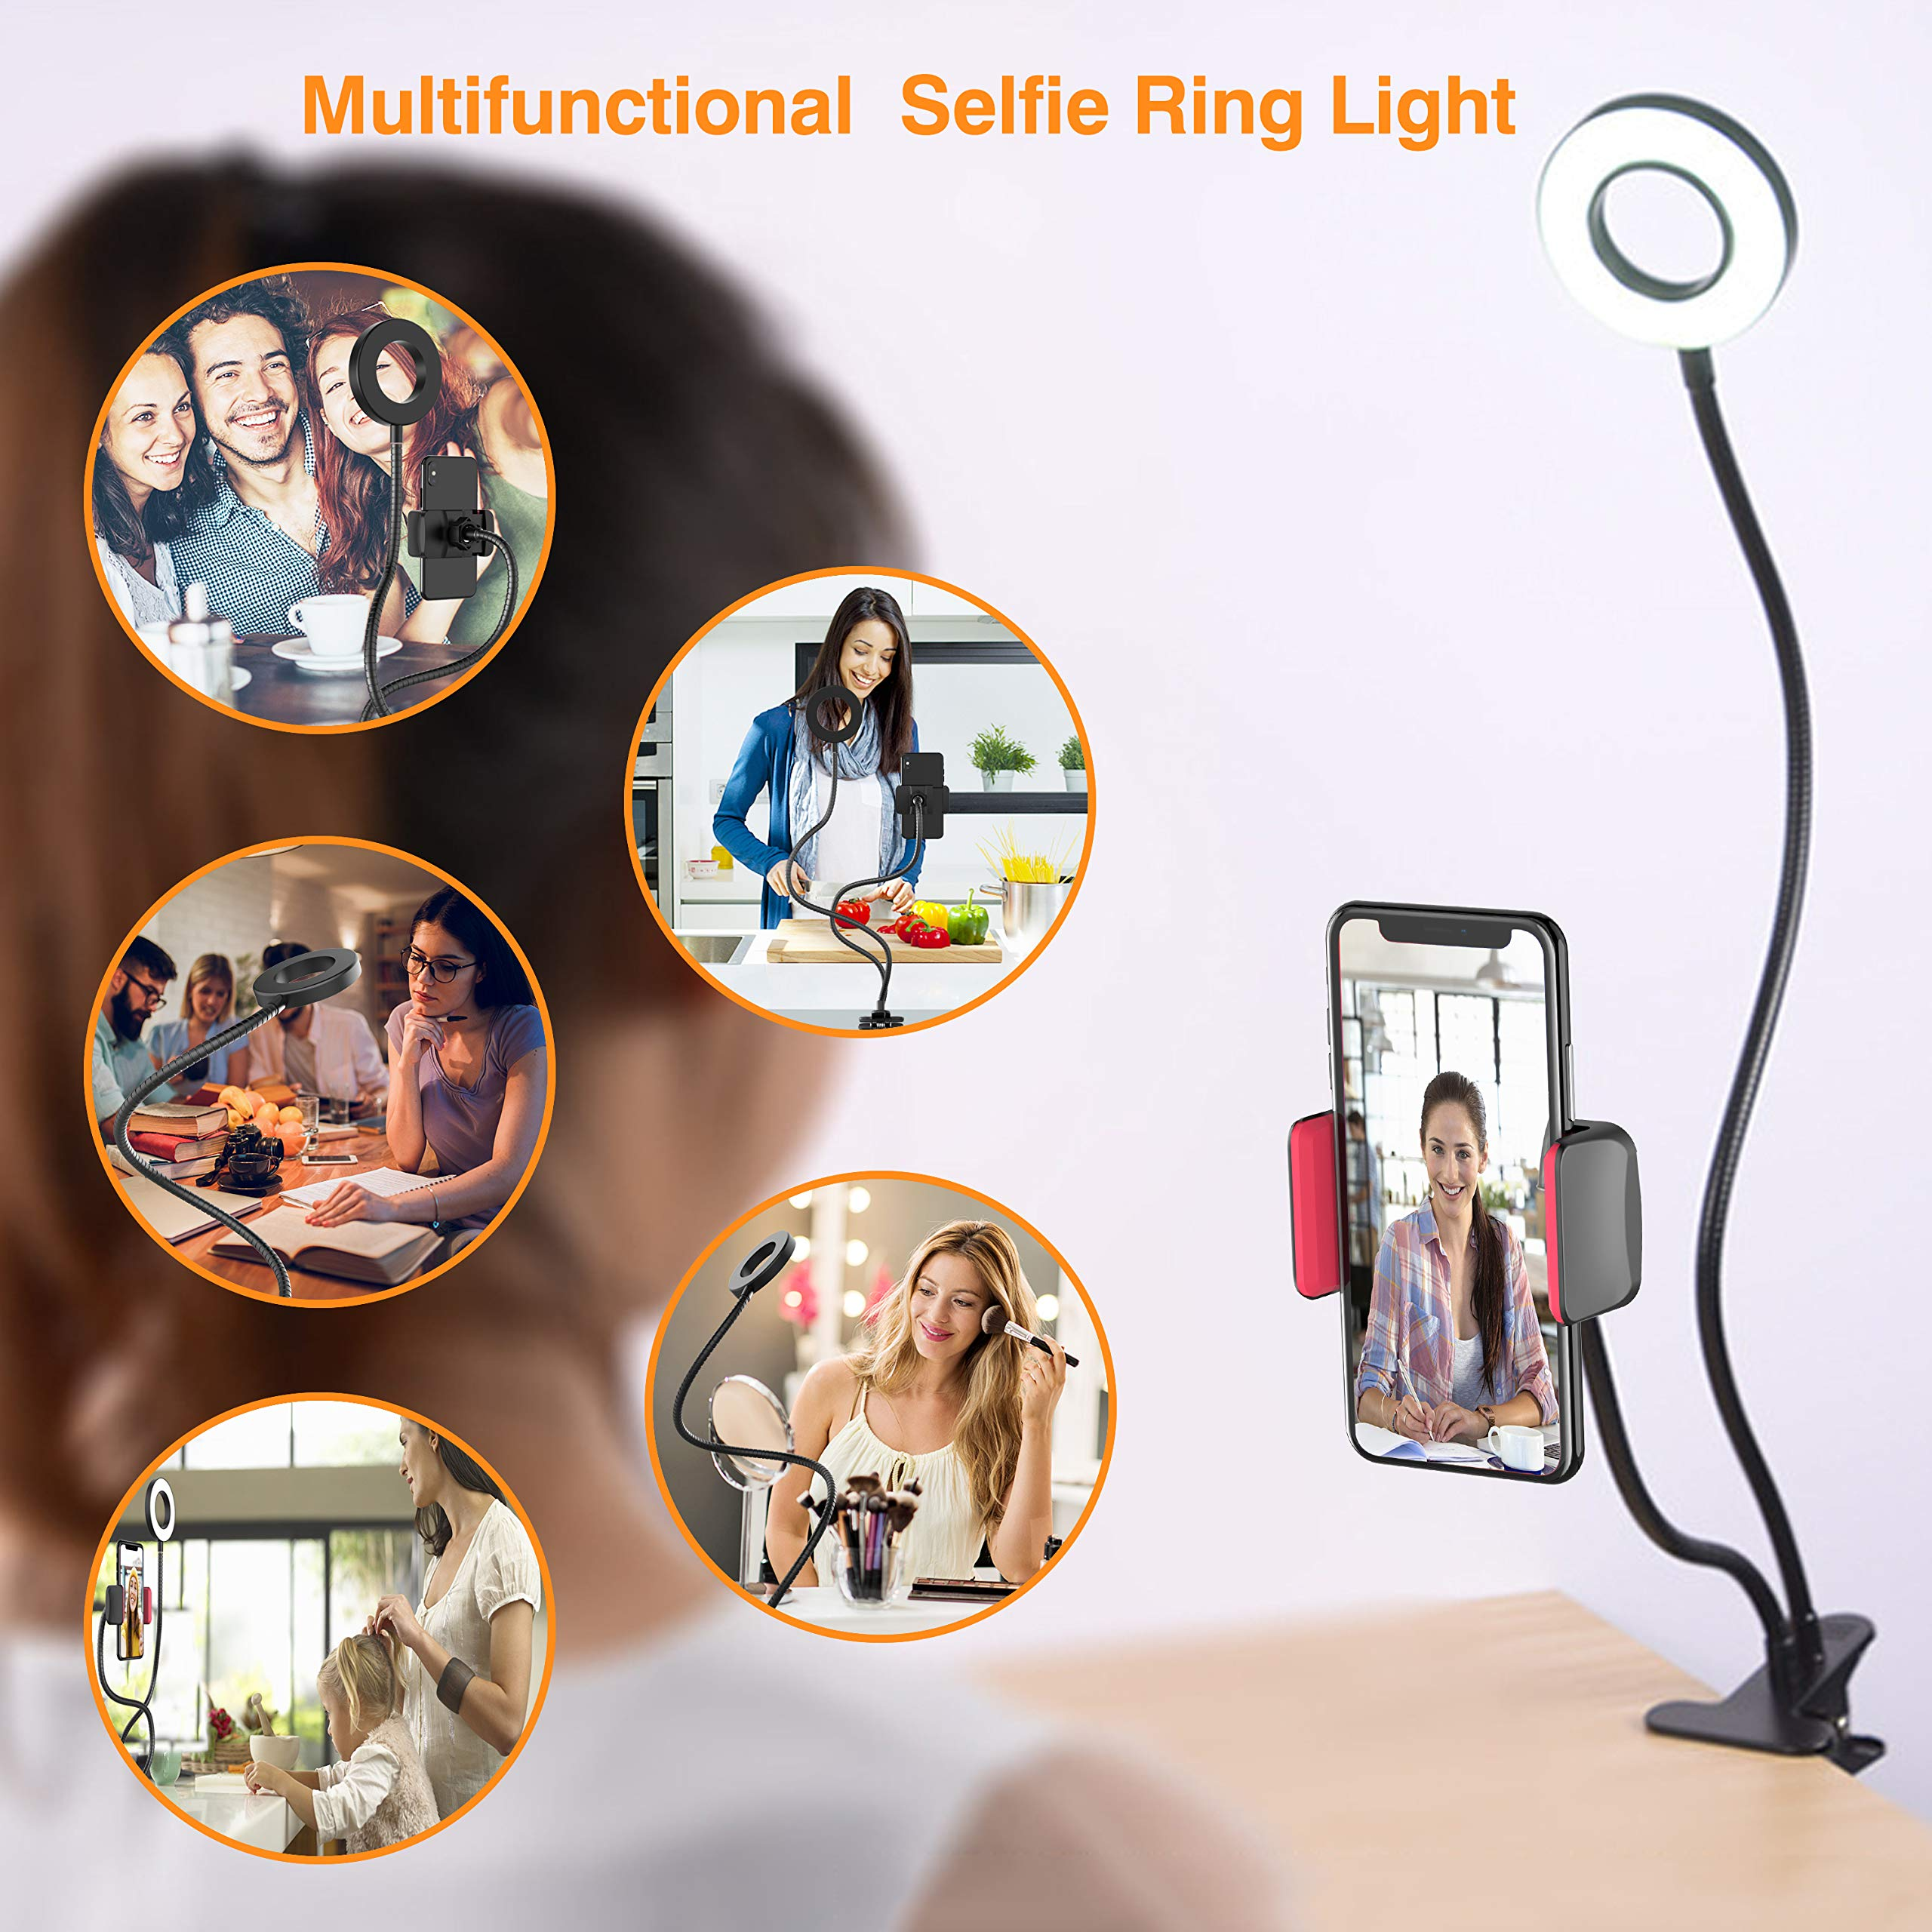 Selfie Ring Light, UPGRADED Selfie Light with Cell Phone Holder Stand for Live Stream Makeup Including Remote Shutter, LED Camera Light 3 Light Mode 10 Level Brightness Flexible Arm for iPhone/Android by Erligpowht (Image #8)